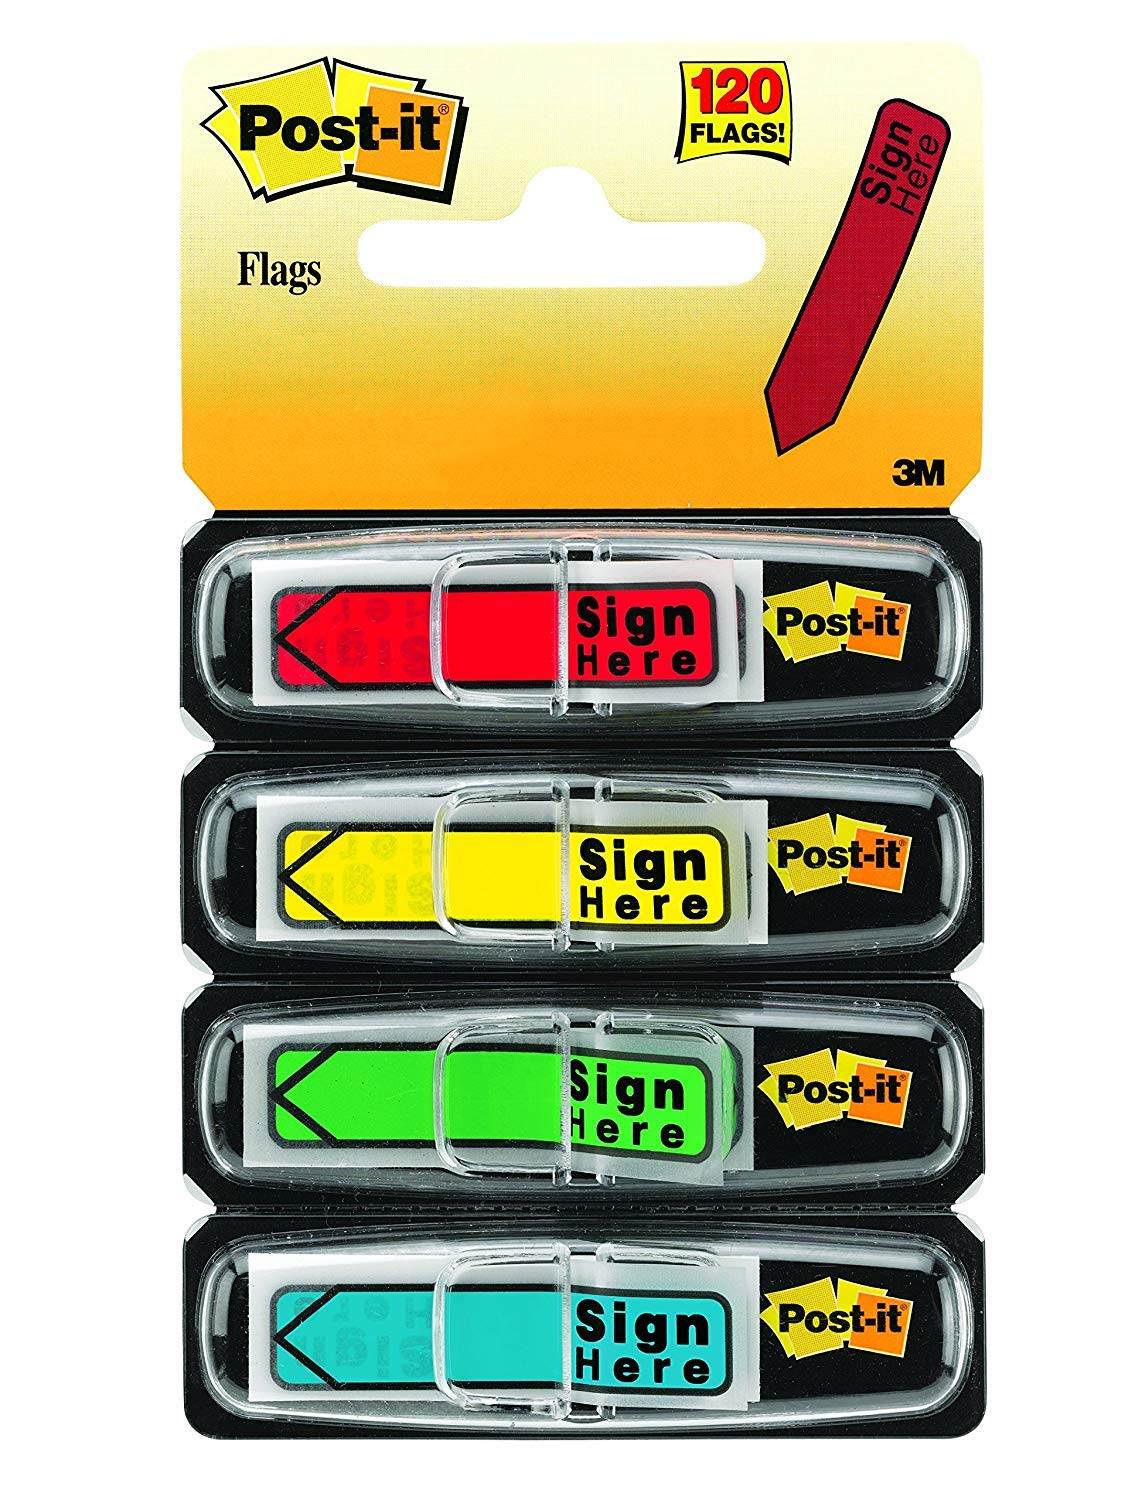 Post-it Message Flags,''Sign Here'', Assorted Colors, 1/2-Inch Wide, 30/Dispenser F321W, 4-Dispensers/Pack, 2-Pack by Post-it